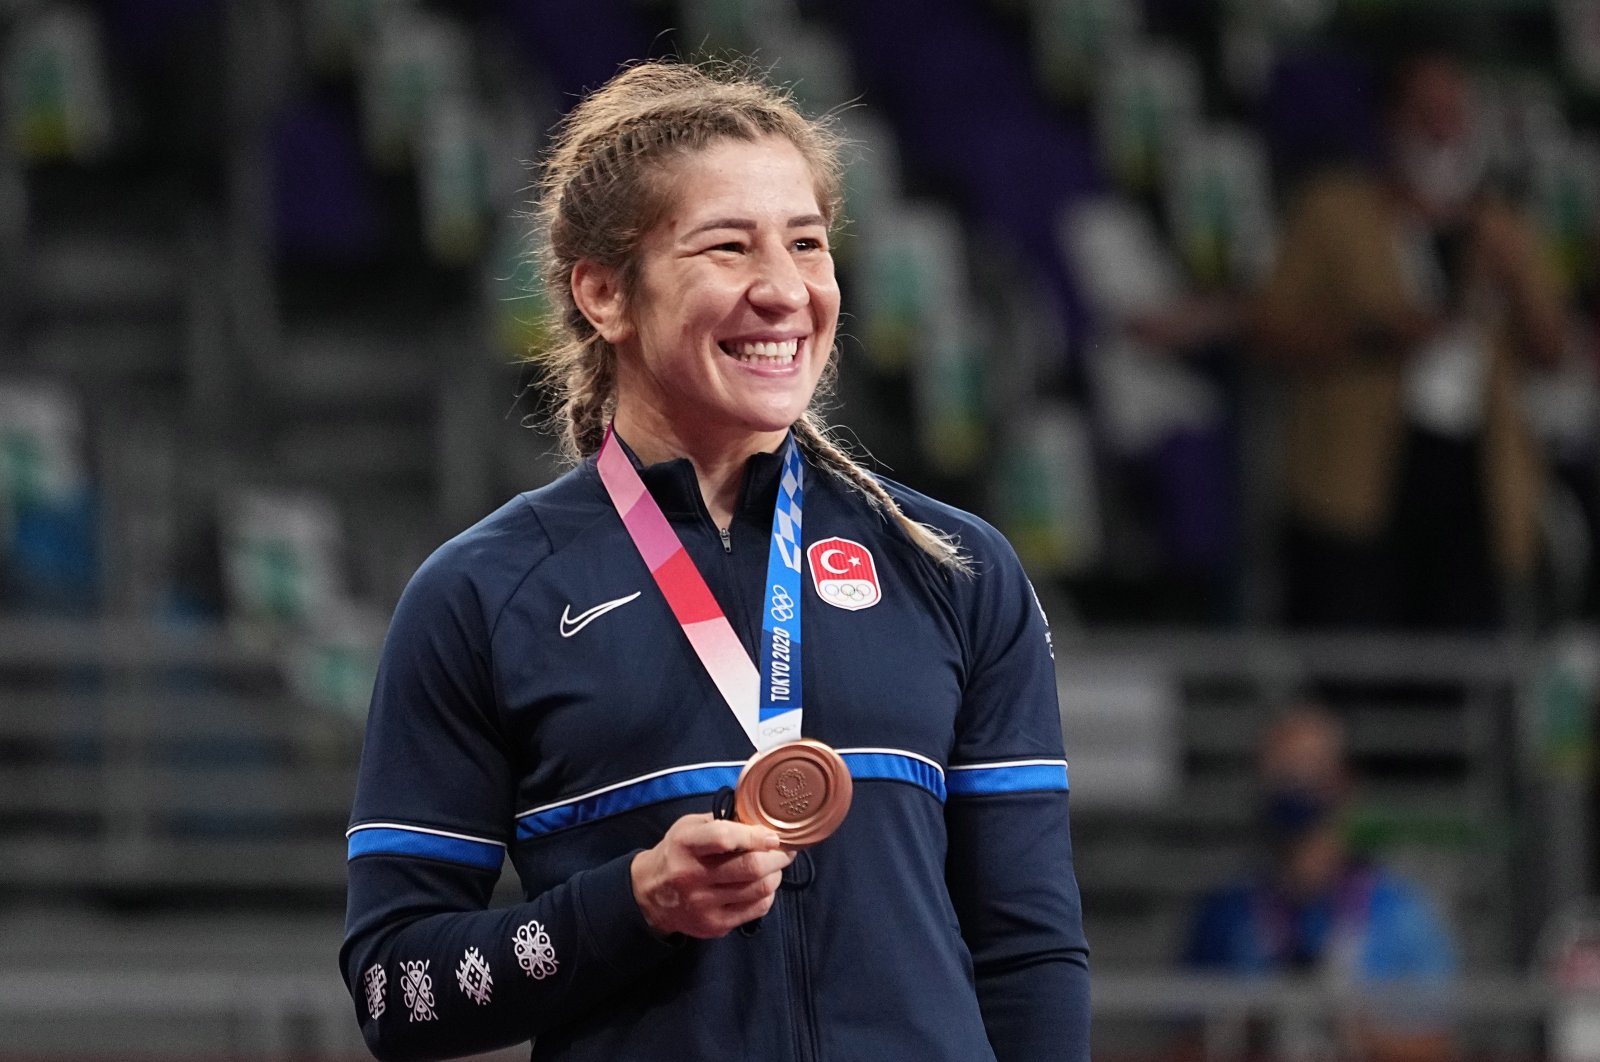 Bronze medalist Yasemin Adar of Turkey poses on the podium during the medal ceremony for the Women's Freestyle 76kg Wrestling final of the Tokyo 2020 Olympic Games at the Makuhari Messe convention centre in Chiba, Japan, 02 August 2021. (EPA Photo)